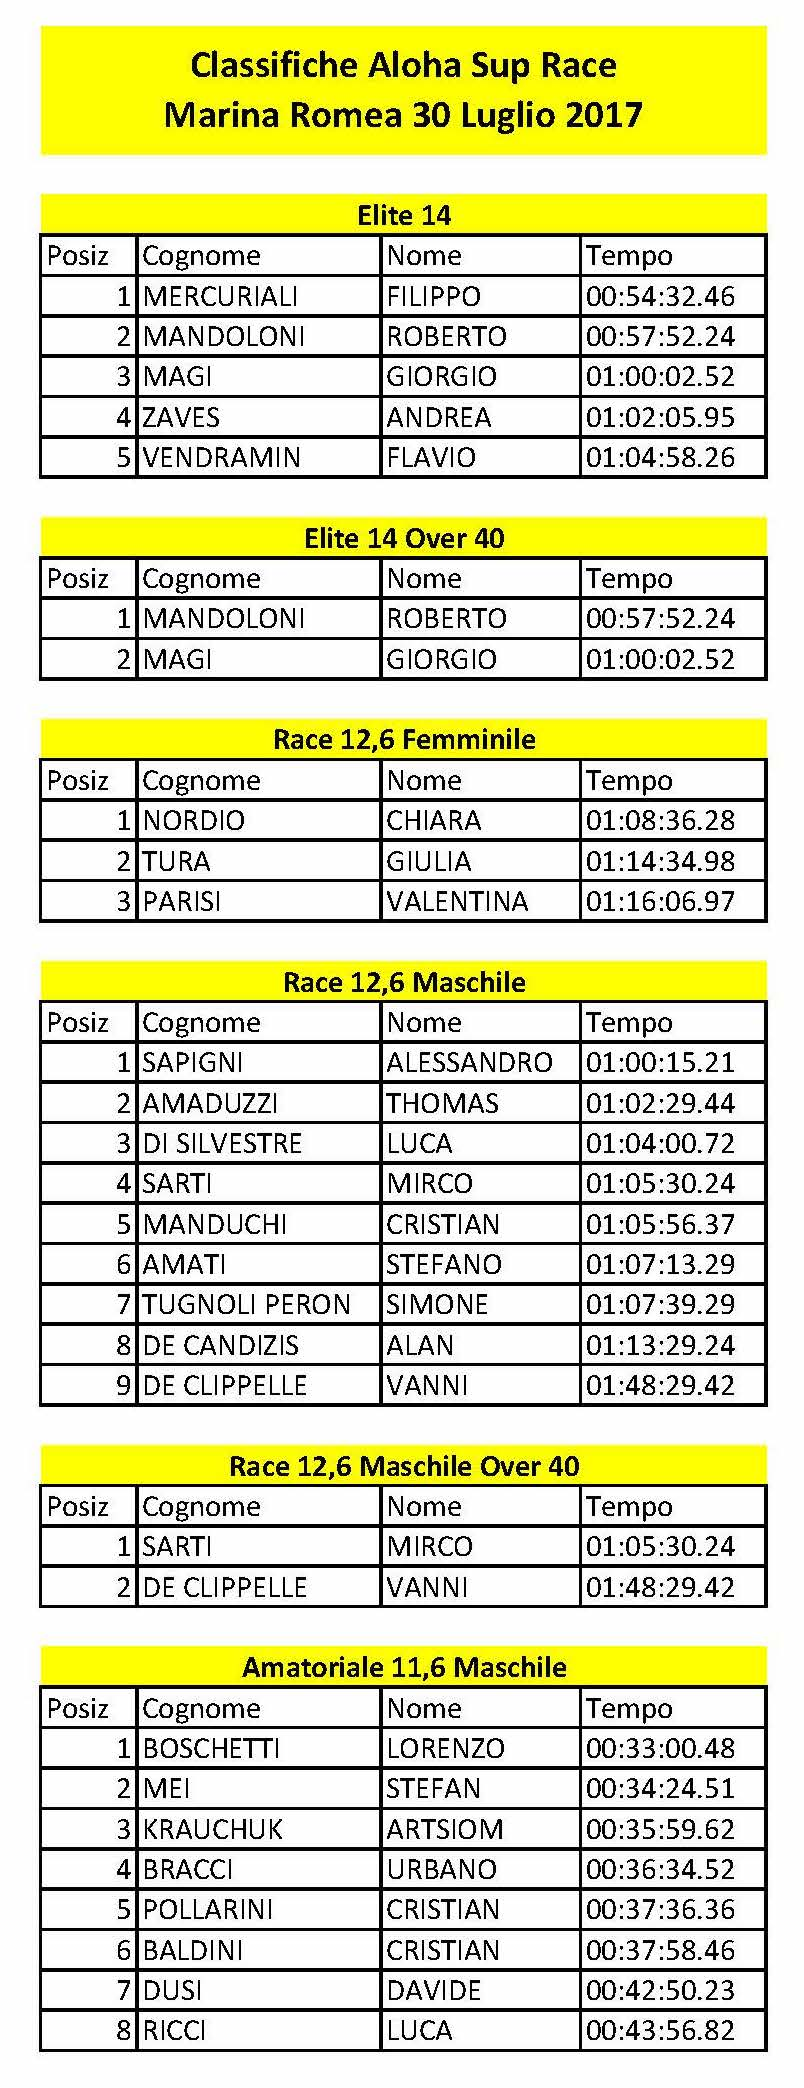 Classifiche-Aloha-Sup-Race-Marina-Romea-30-Luglio-2017_Page_1